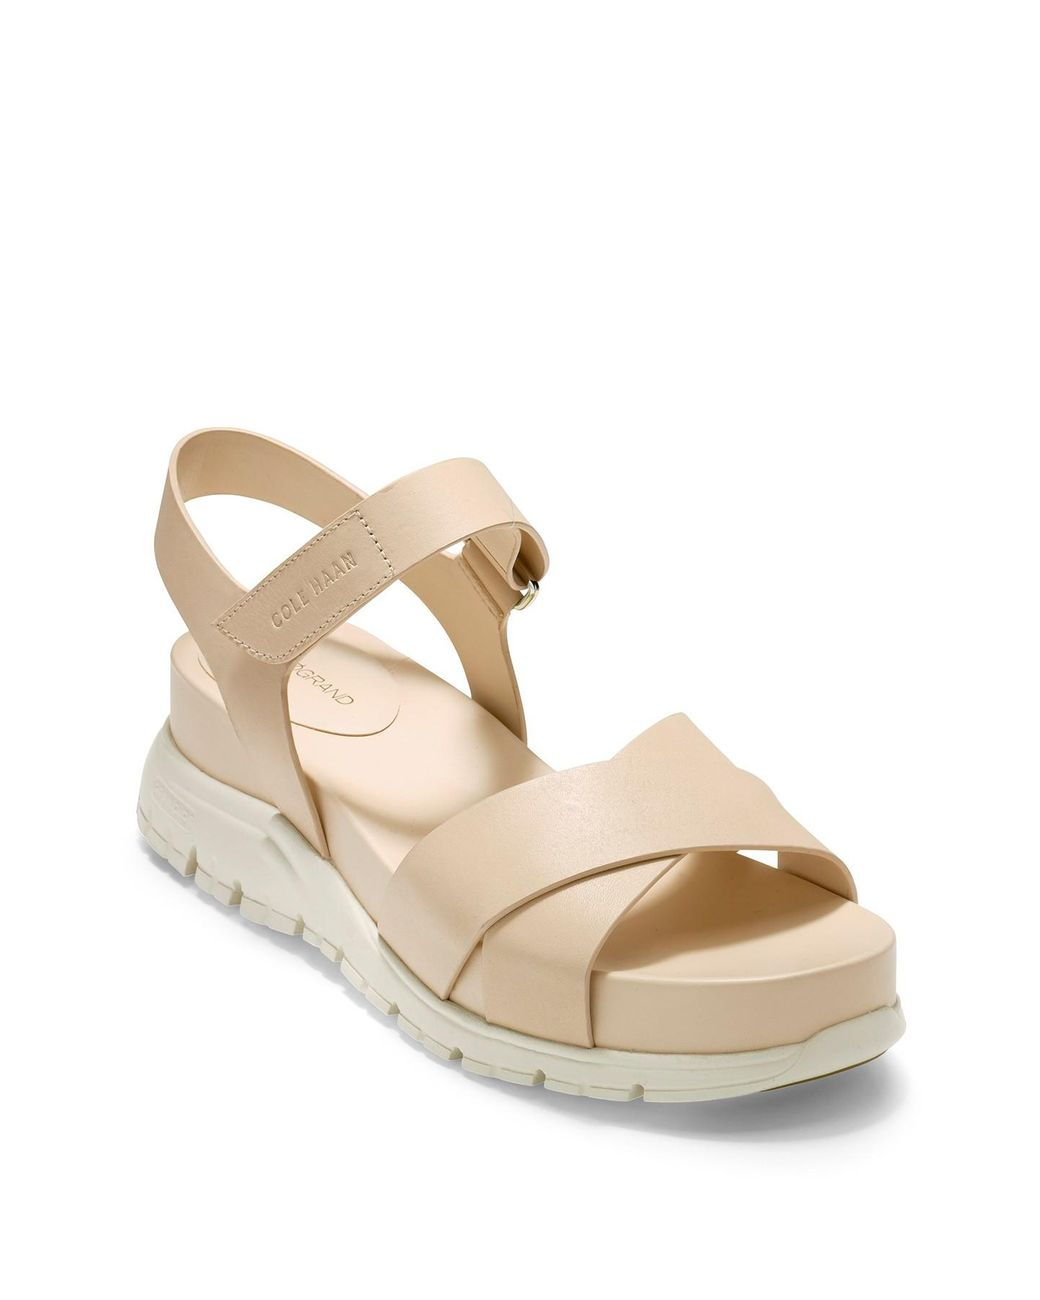 e35d81c66 Lyst - Cole Haan Zerogrand Platform Sandal in Natural